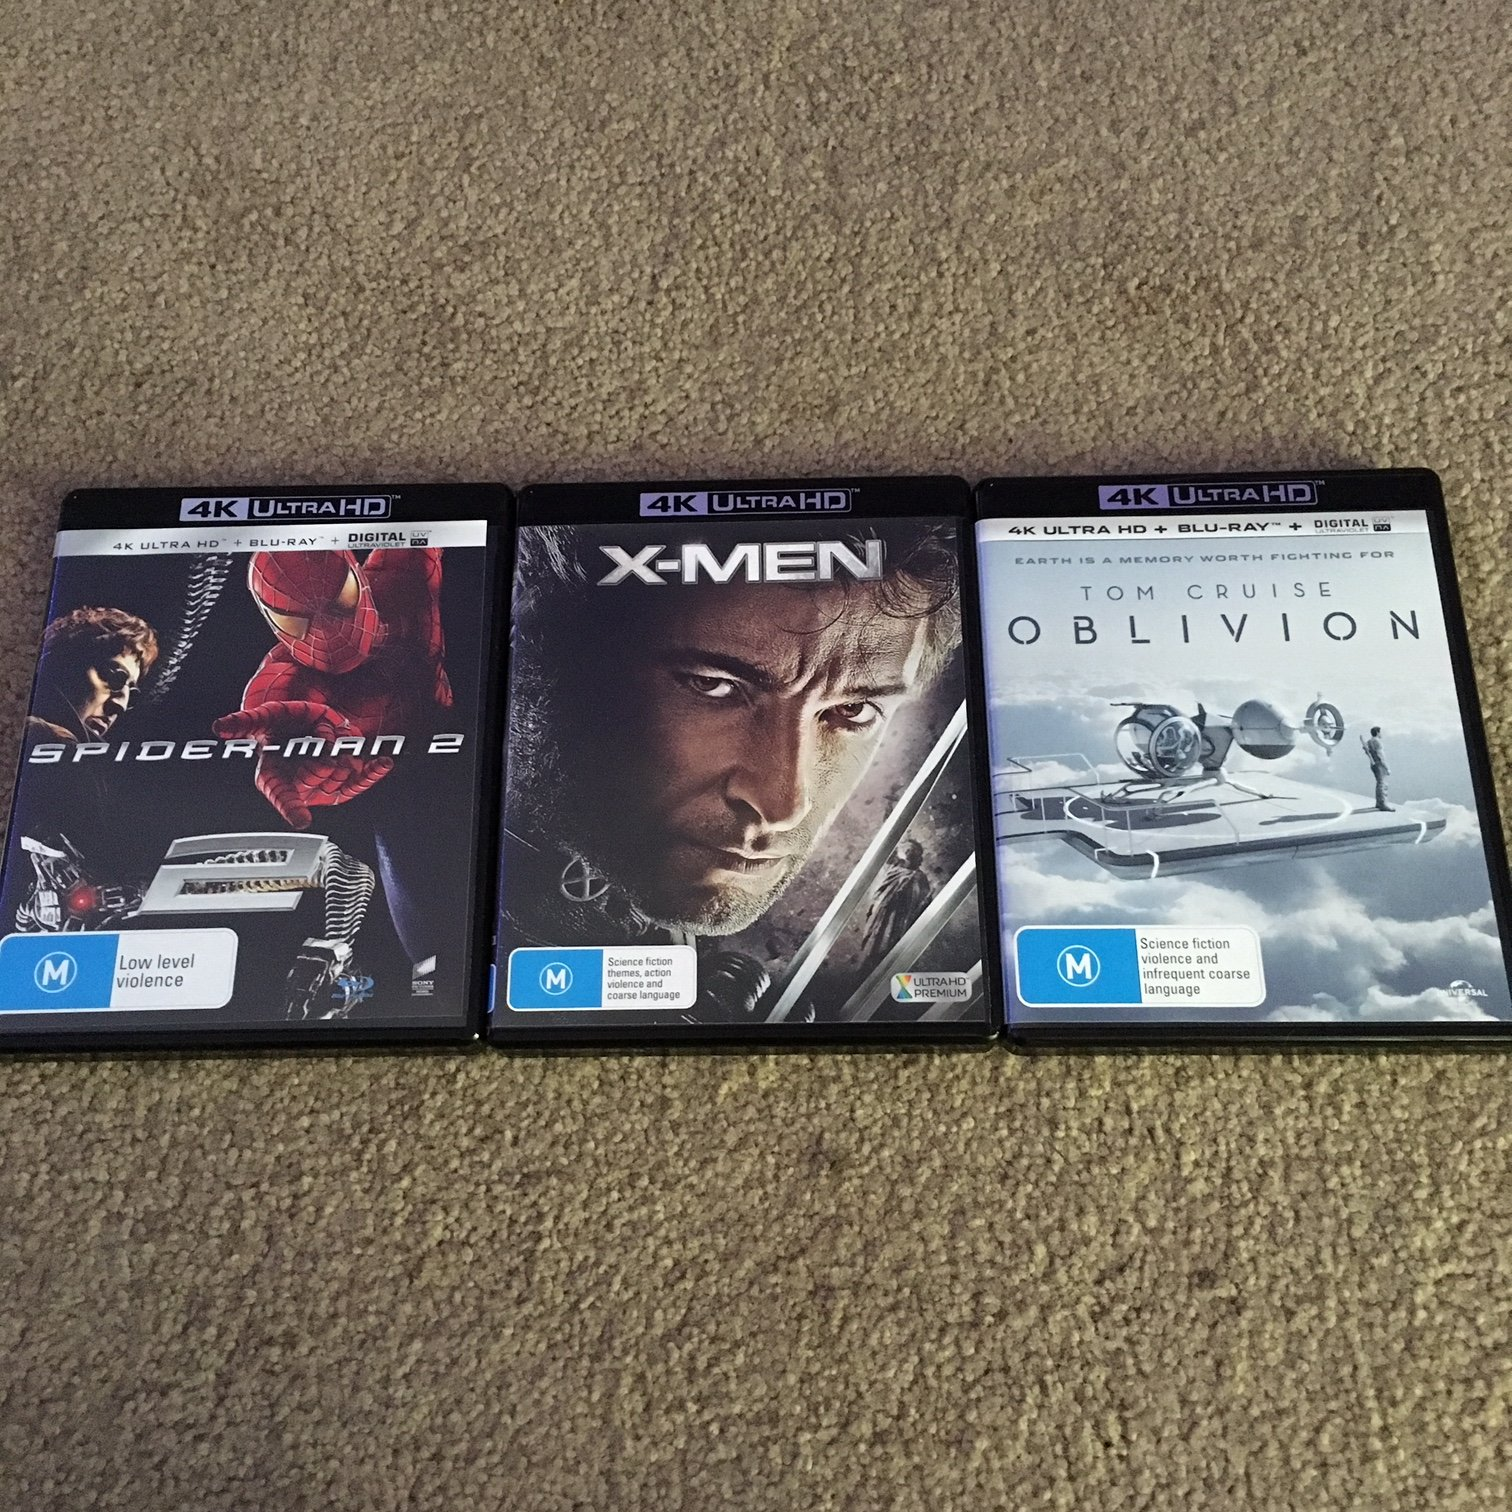 FS: 4k Movies x3 - Classifieds - Vinyl, CD, and Blu-ray - StereoNET